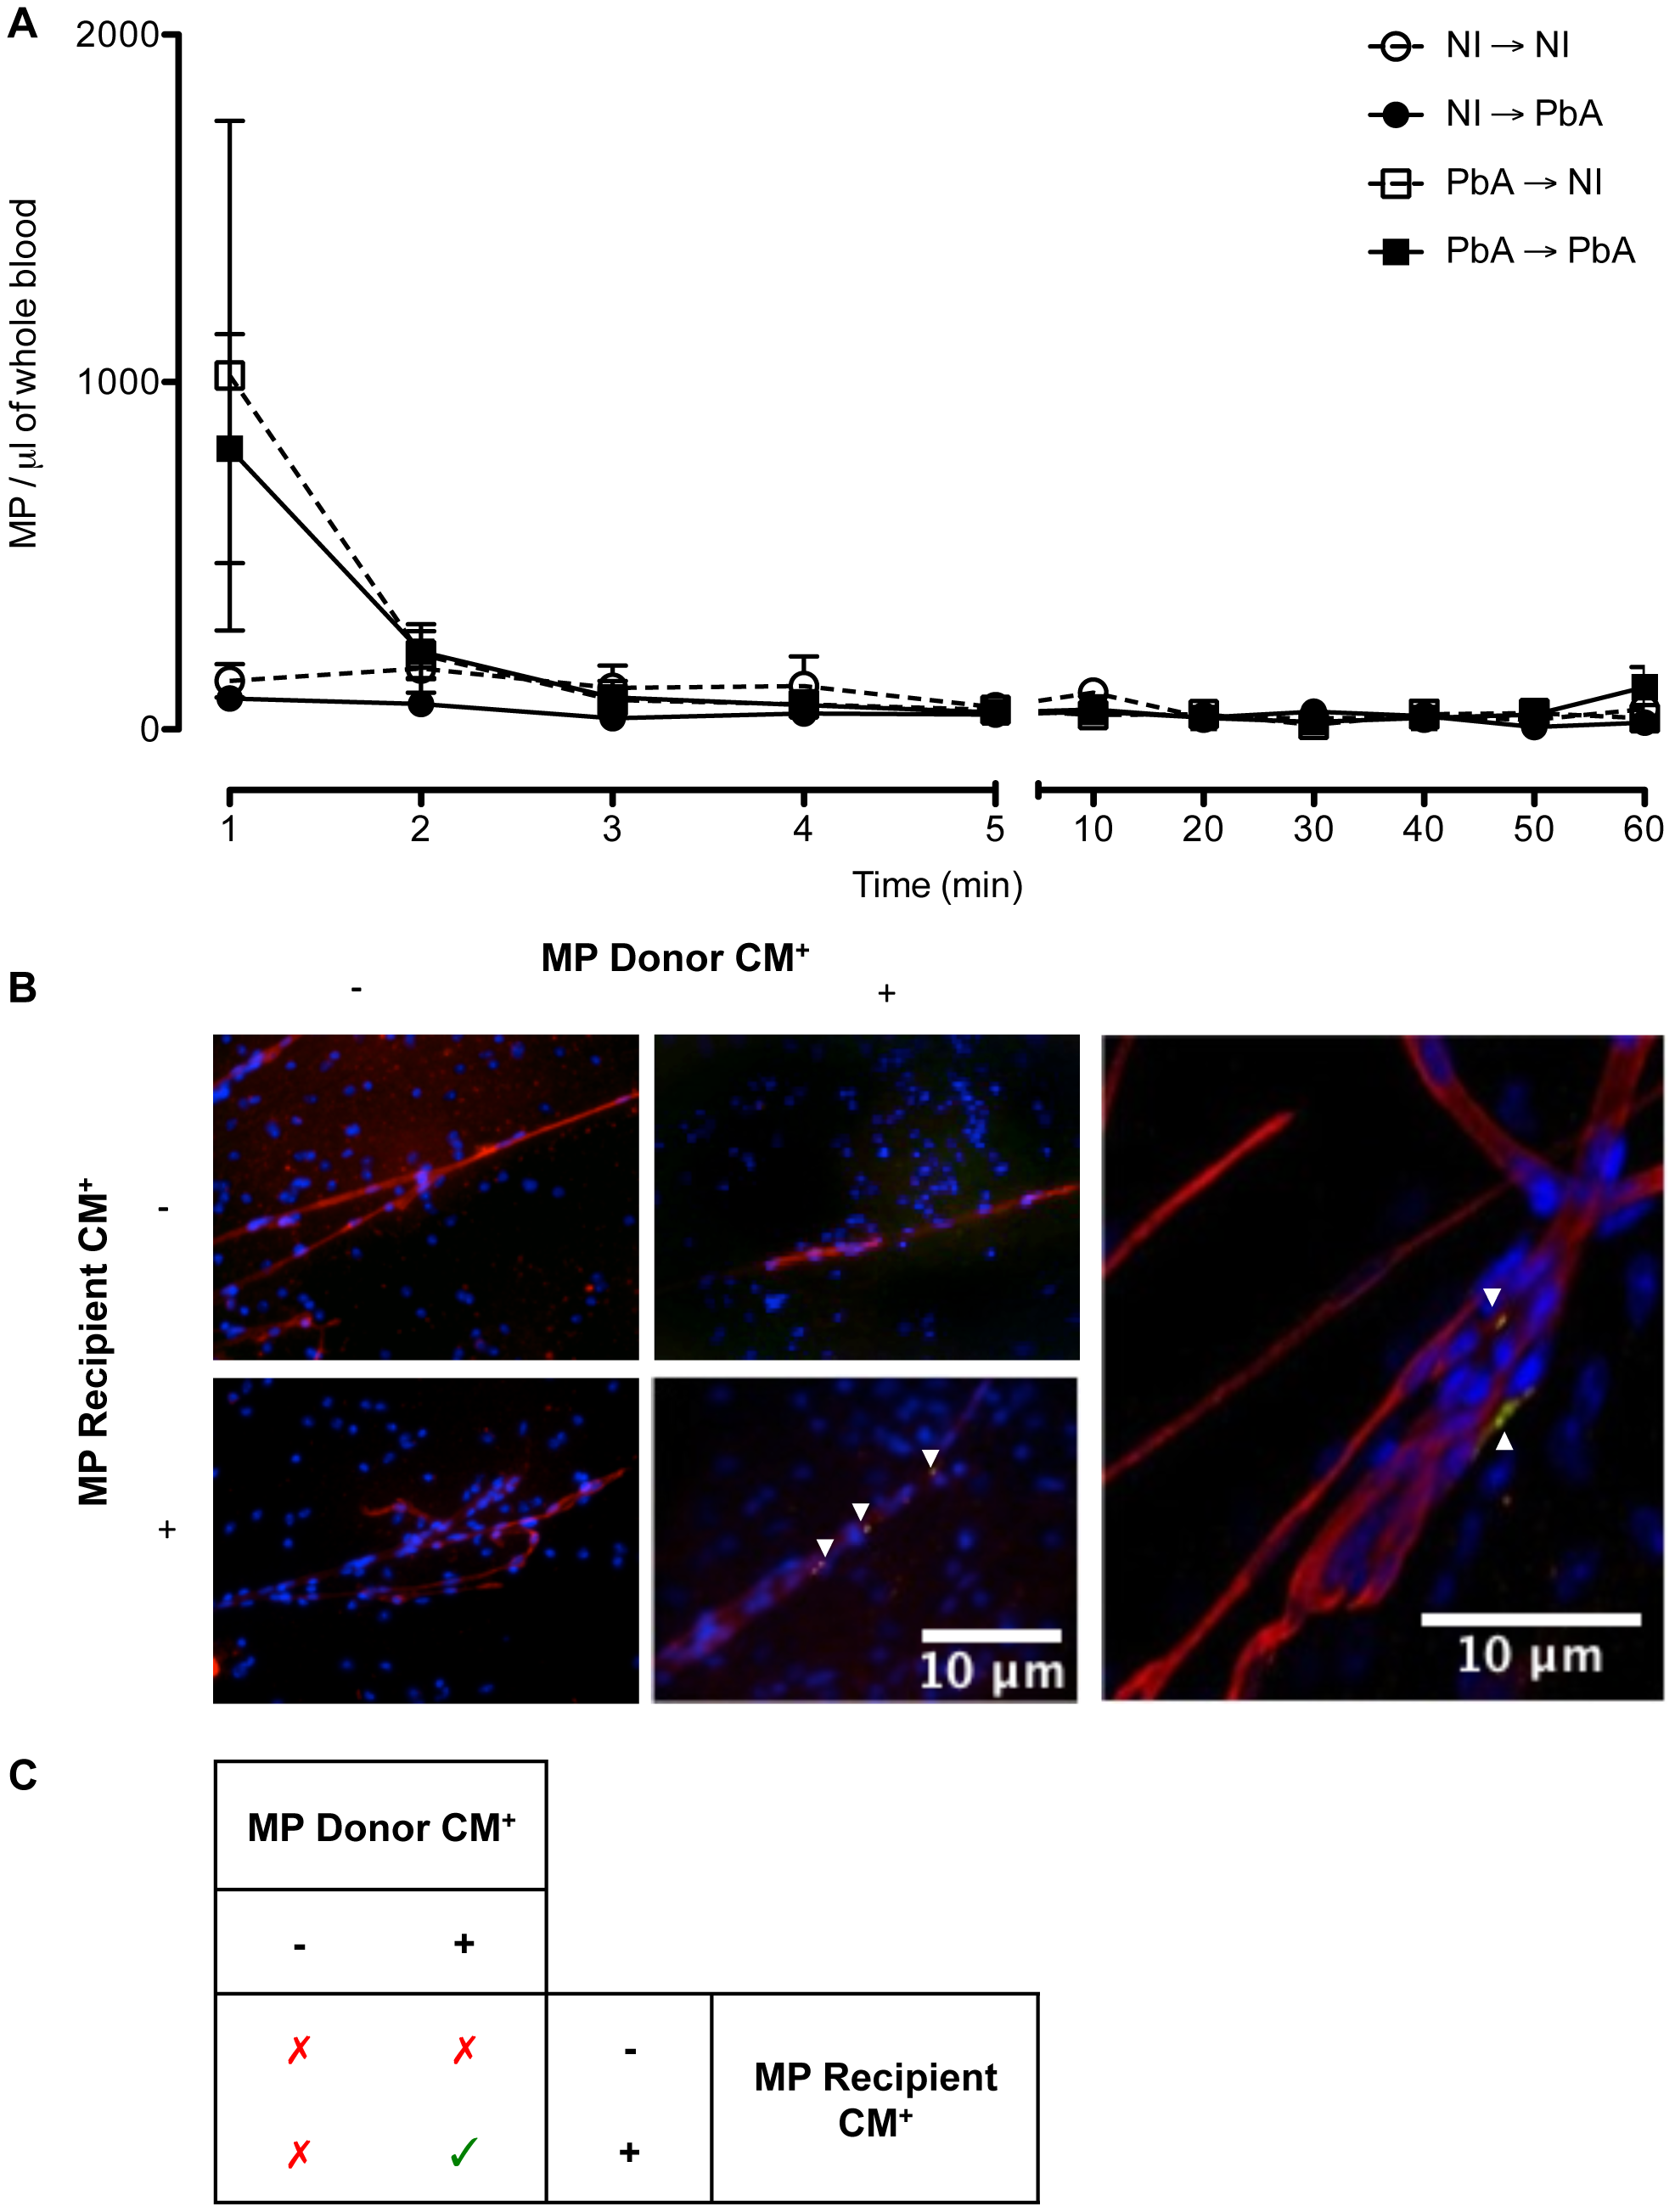 Detection, clearance, and tissue distribution of MP following adoptive transfer.